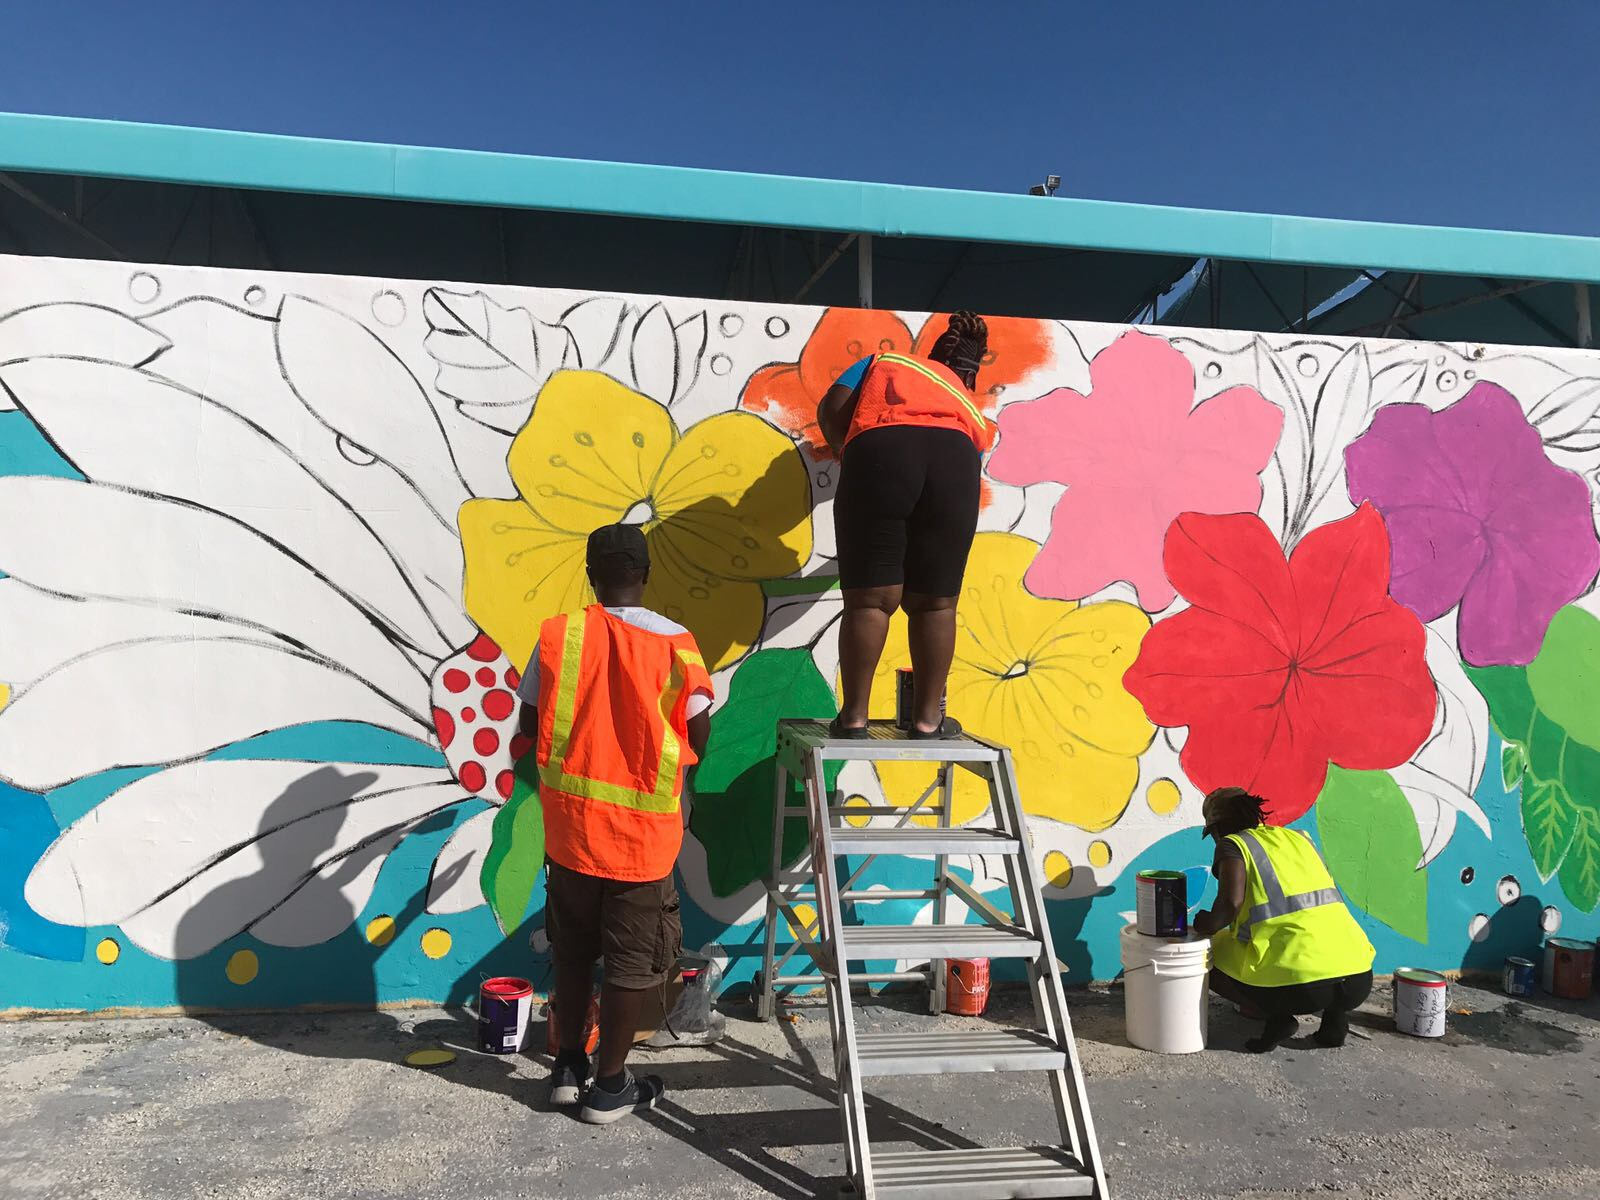 NAGB staff and Exuma community artists work on the airport mural, supported by the Ministry of Tourism.